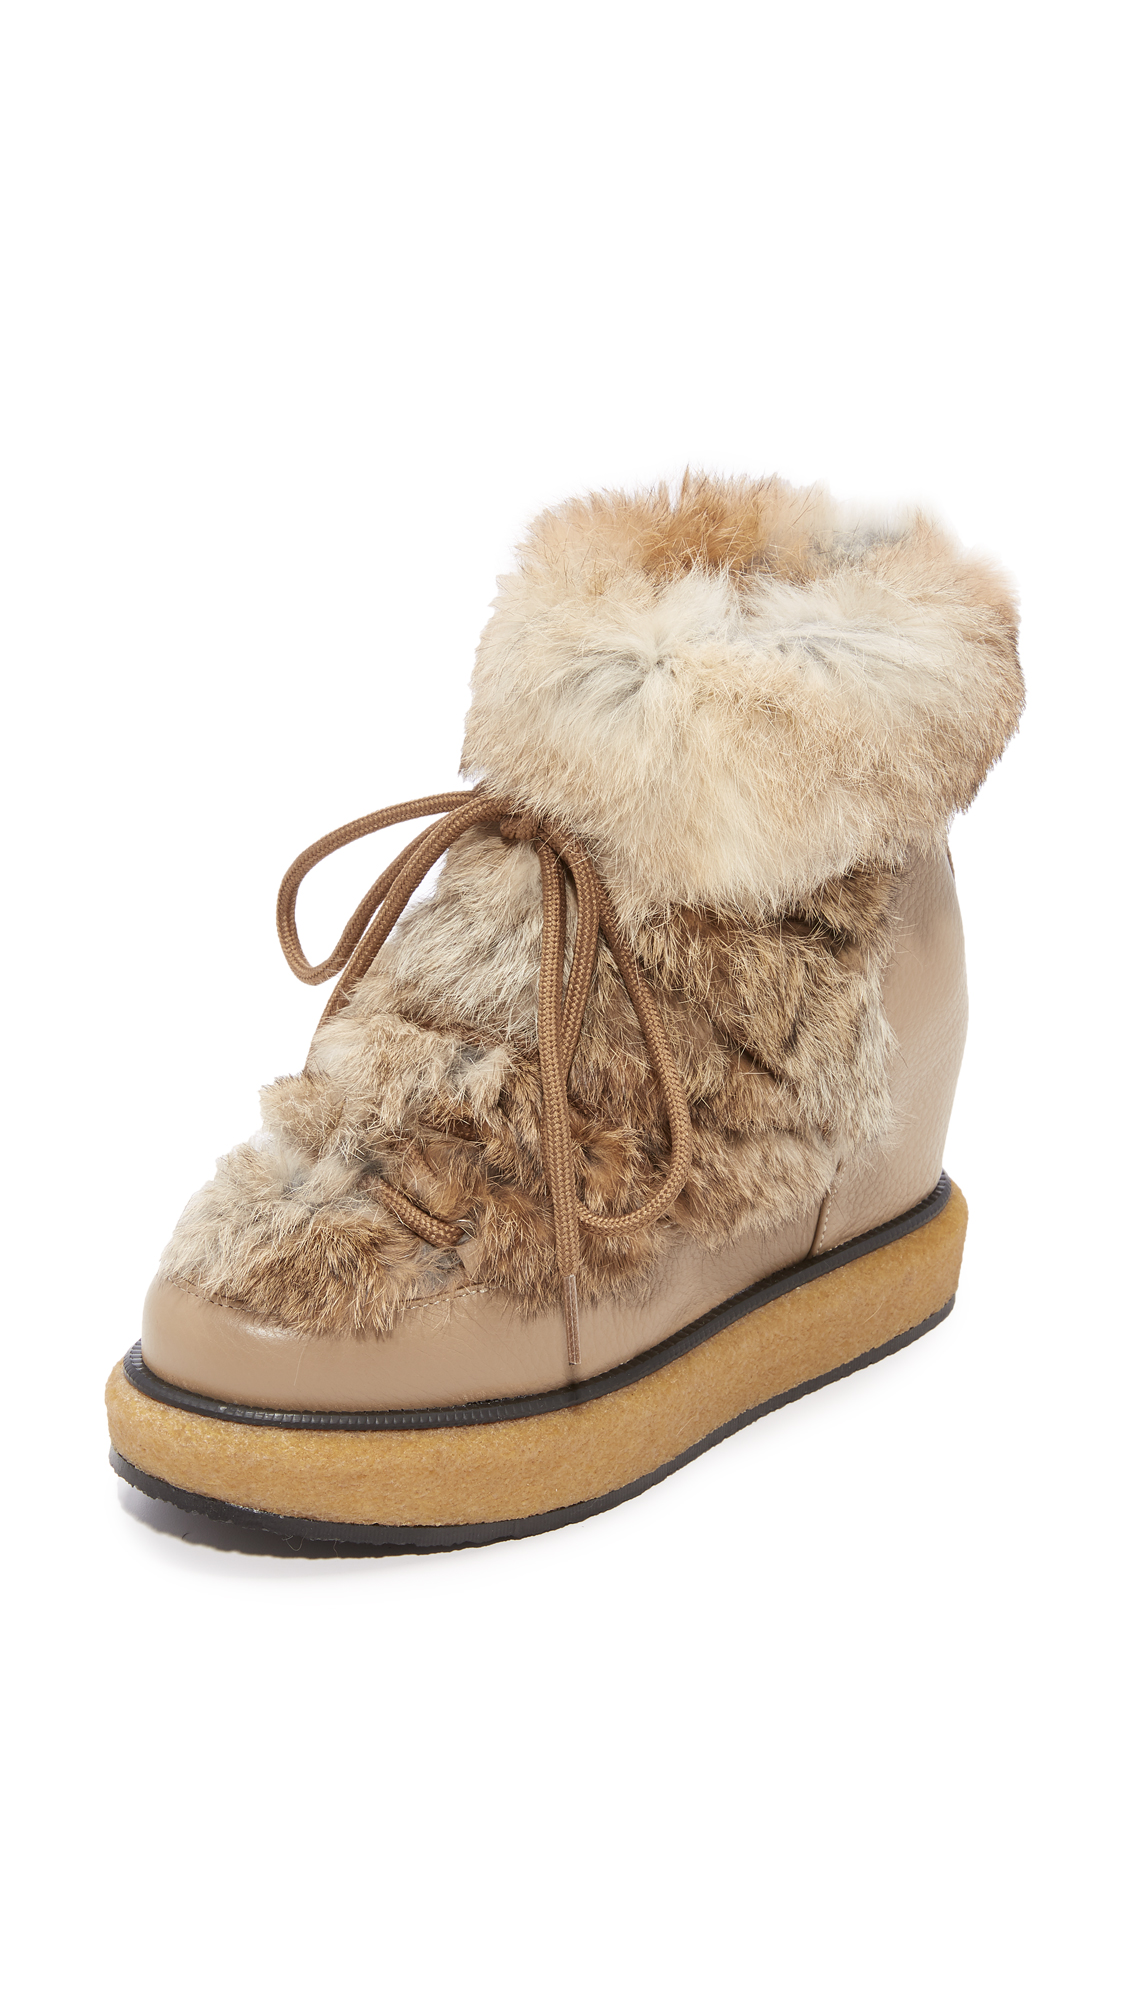 Paloma Barcelo Kansas Fur Wedge Booties - Beige